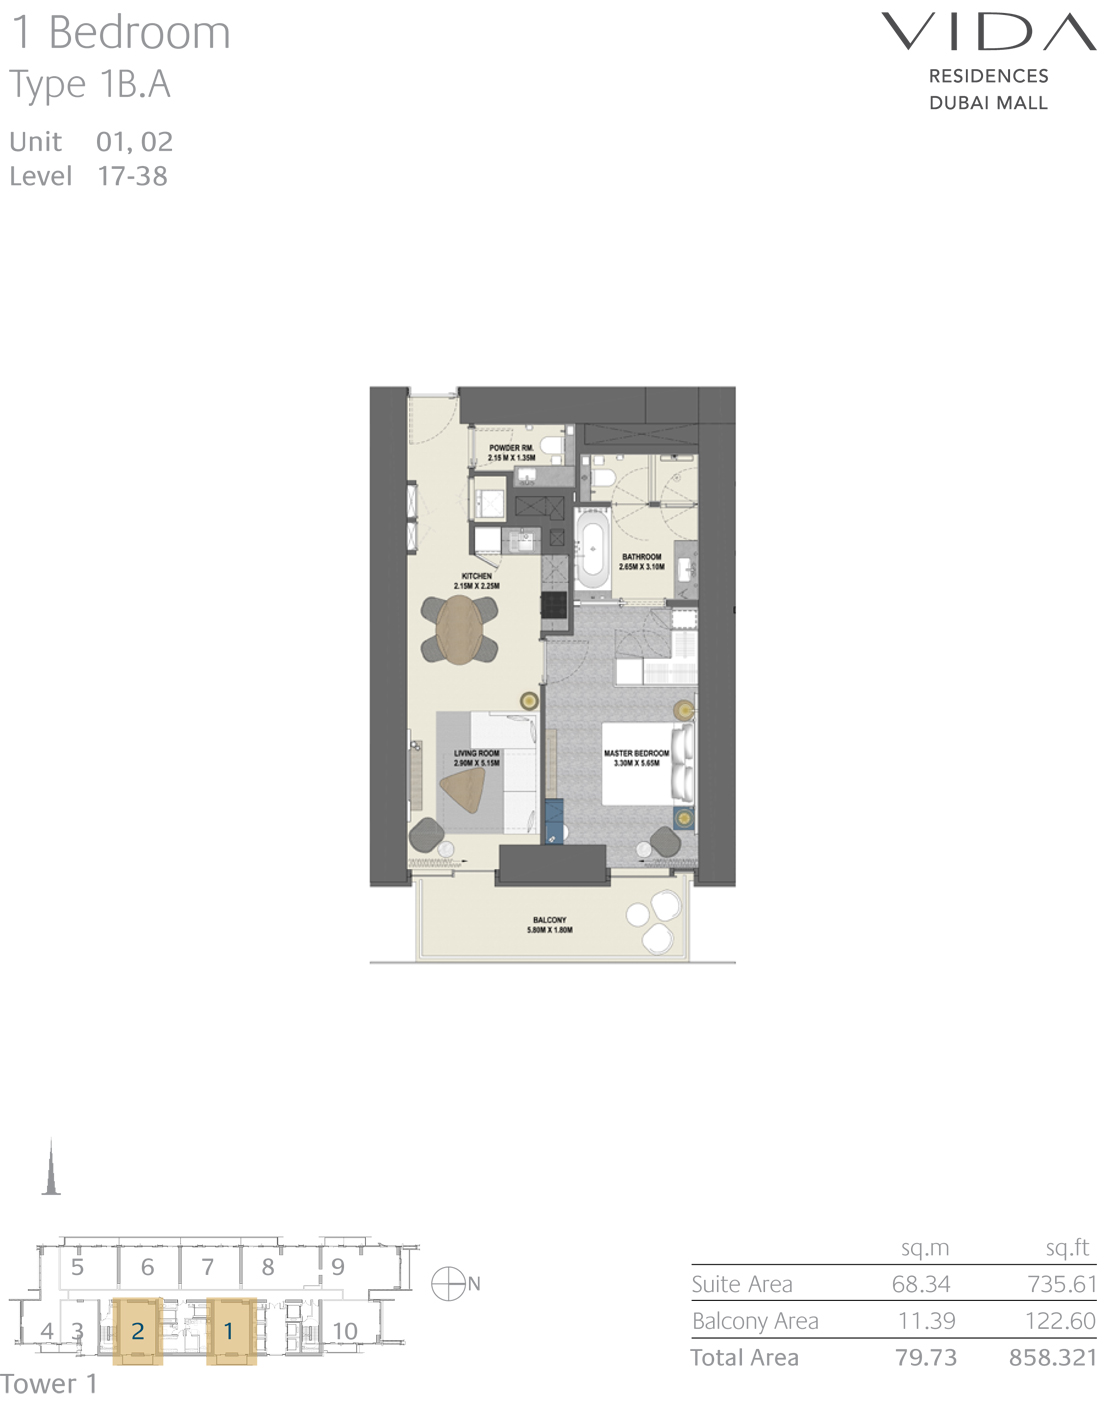 1 Bedroom Type 1B.A unit 01,02 level 17-38